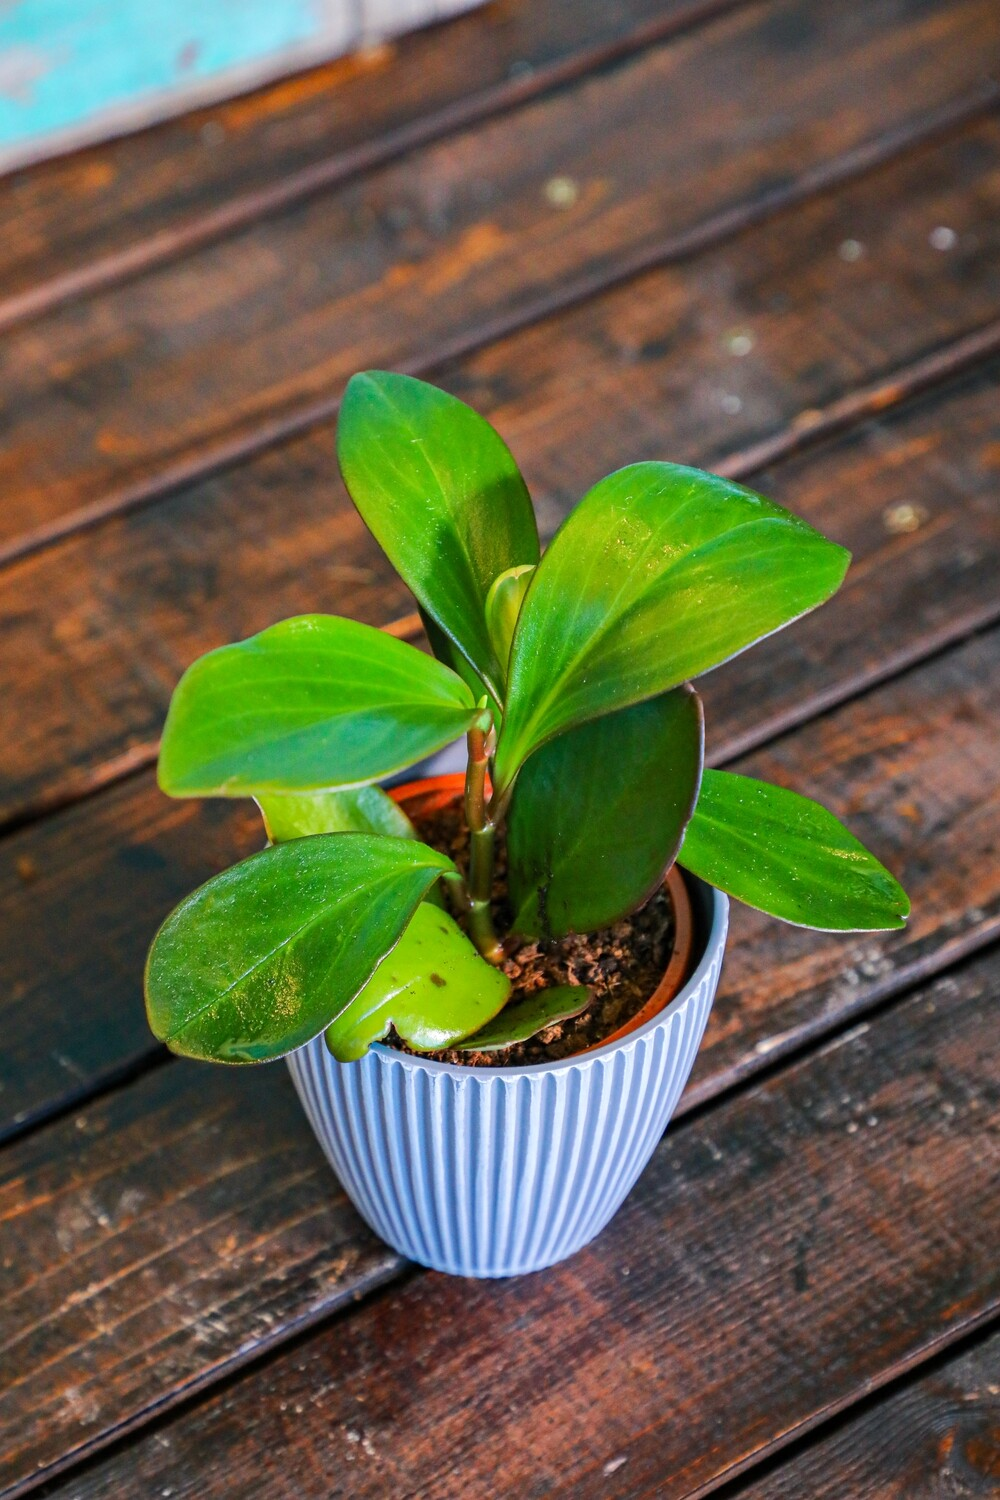 Peperomia (Plant) - Nature by Marc Beyrouthy